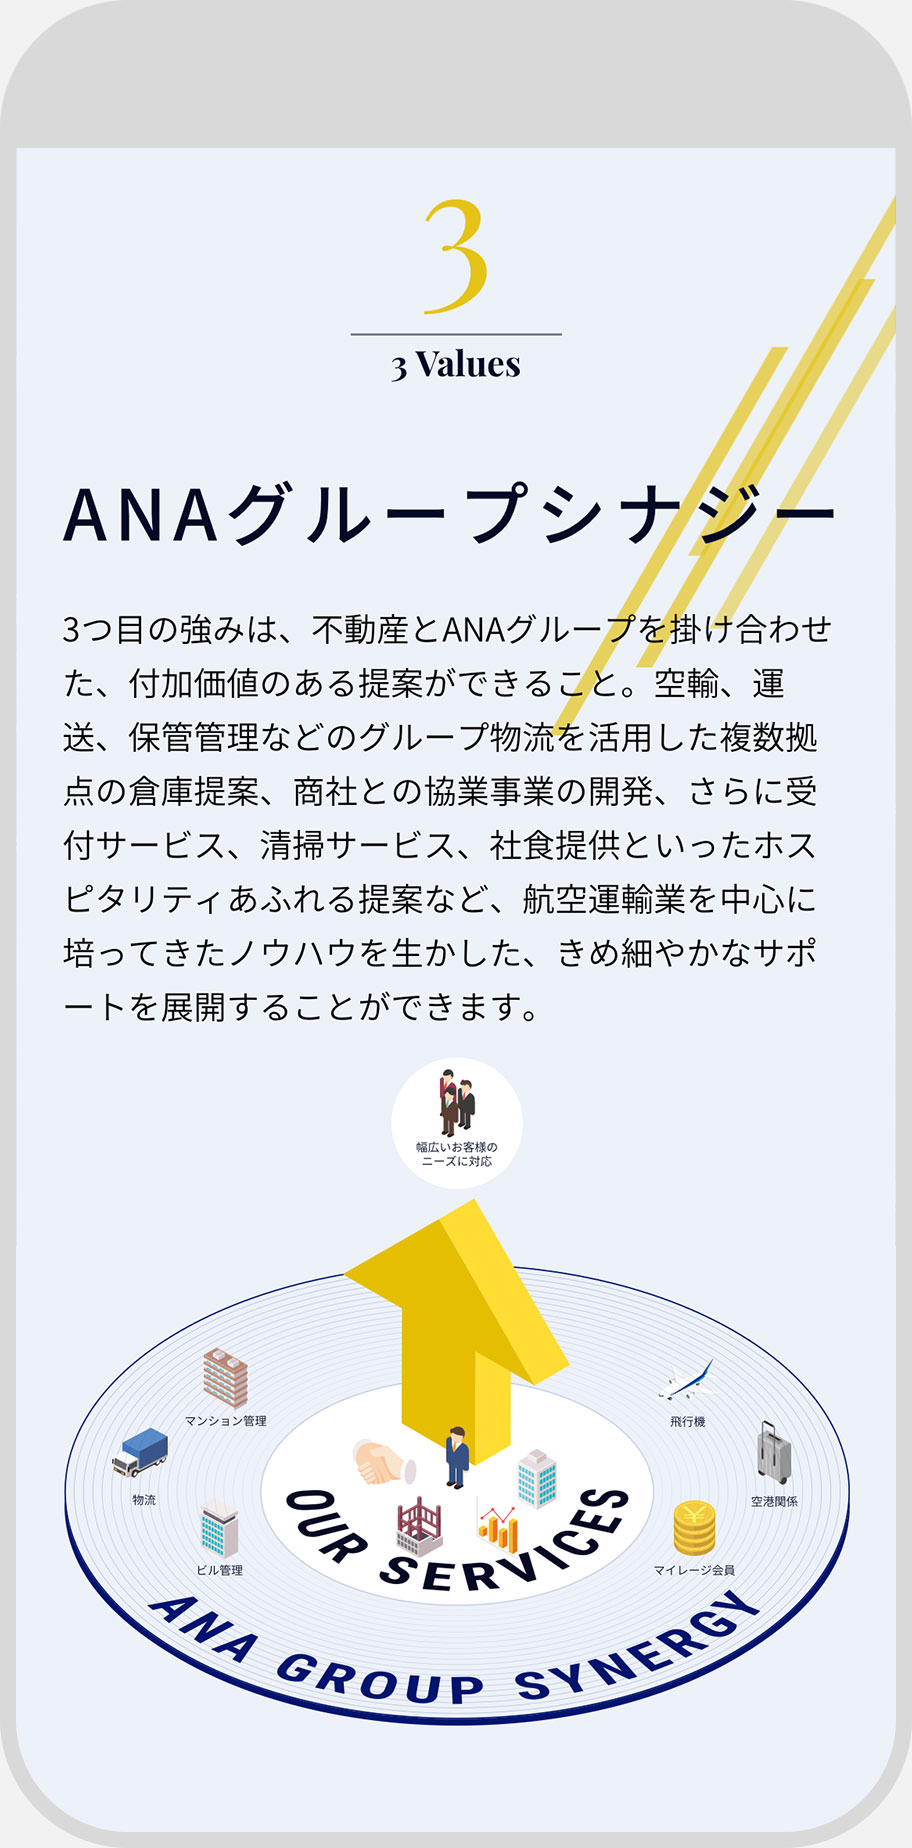 ANA FACILITIES for Business